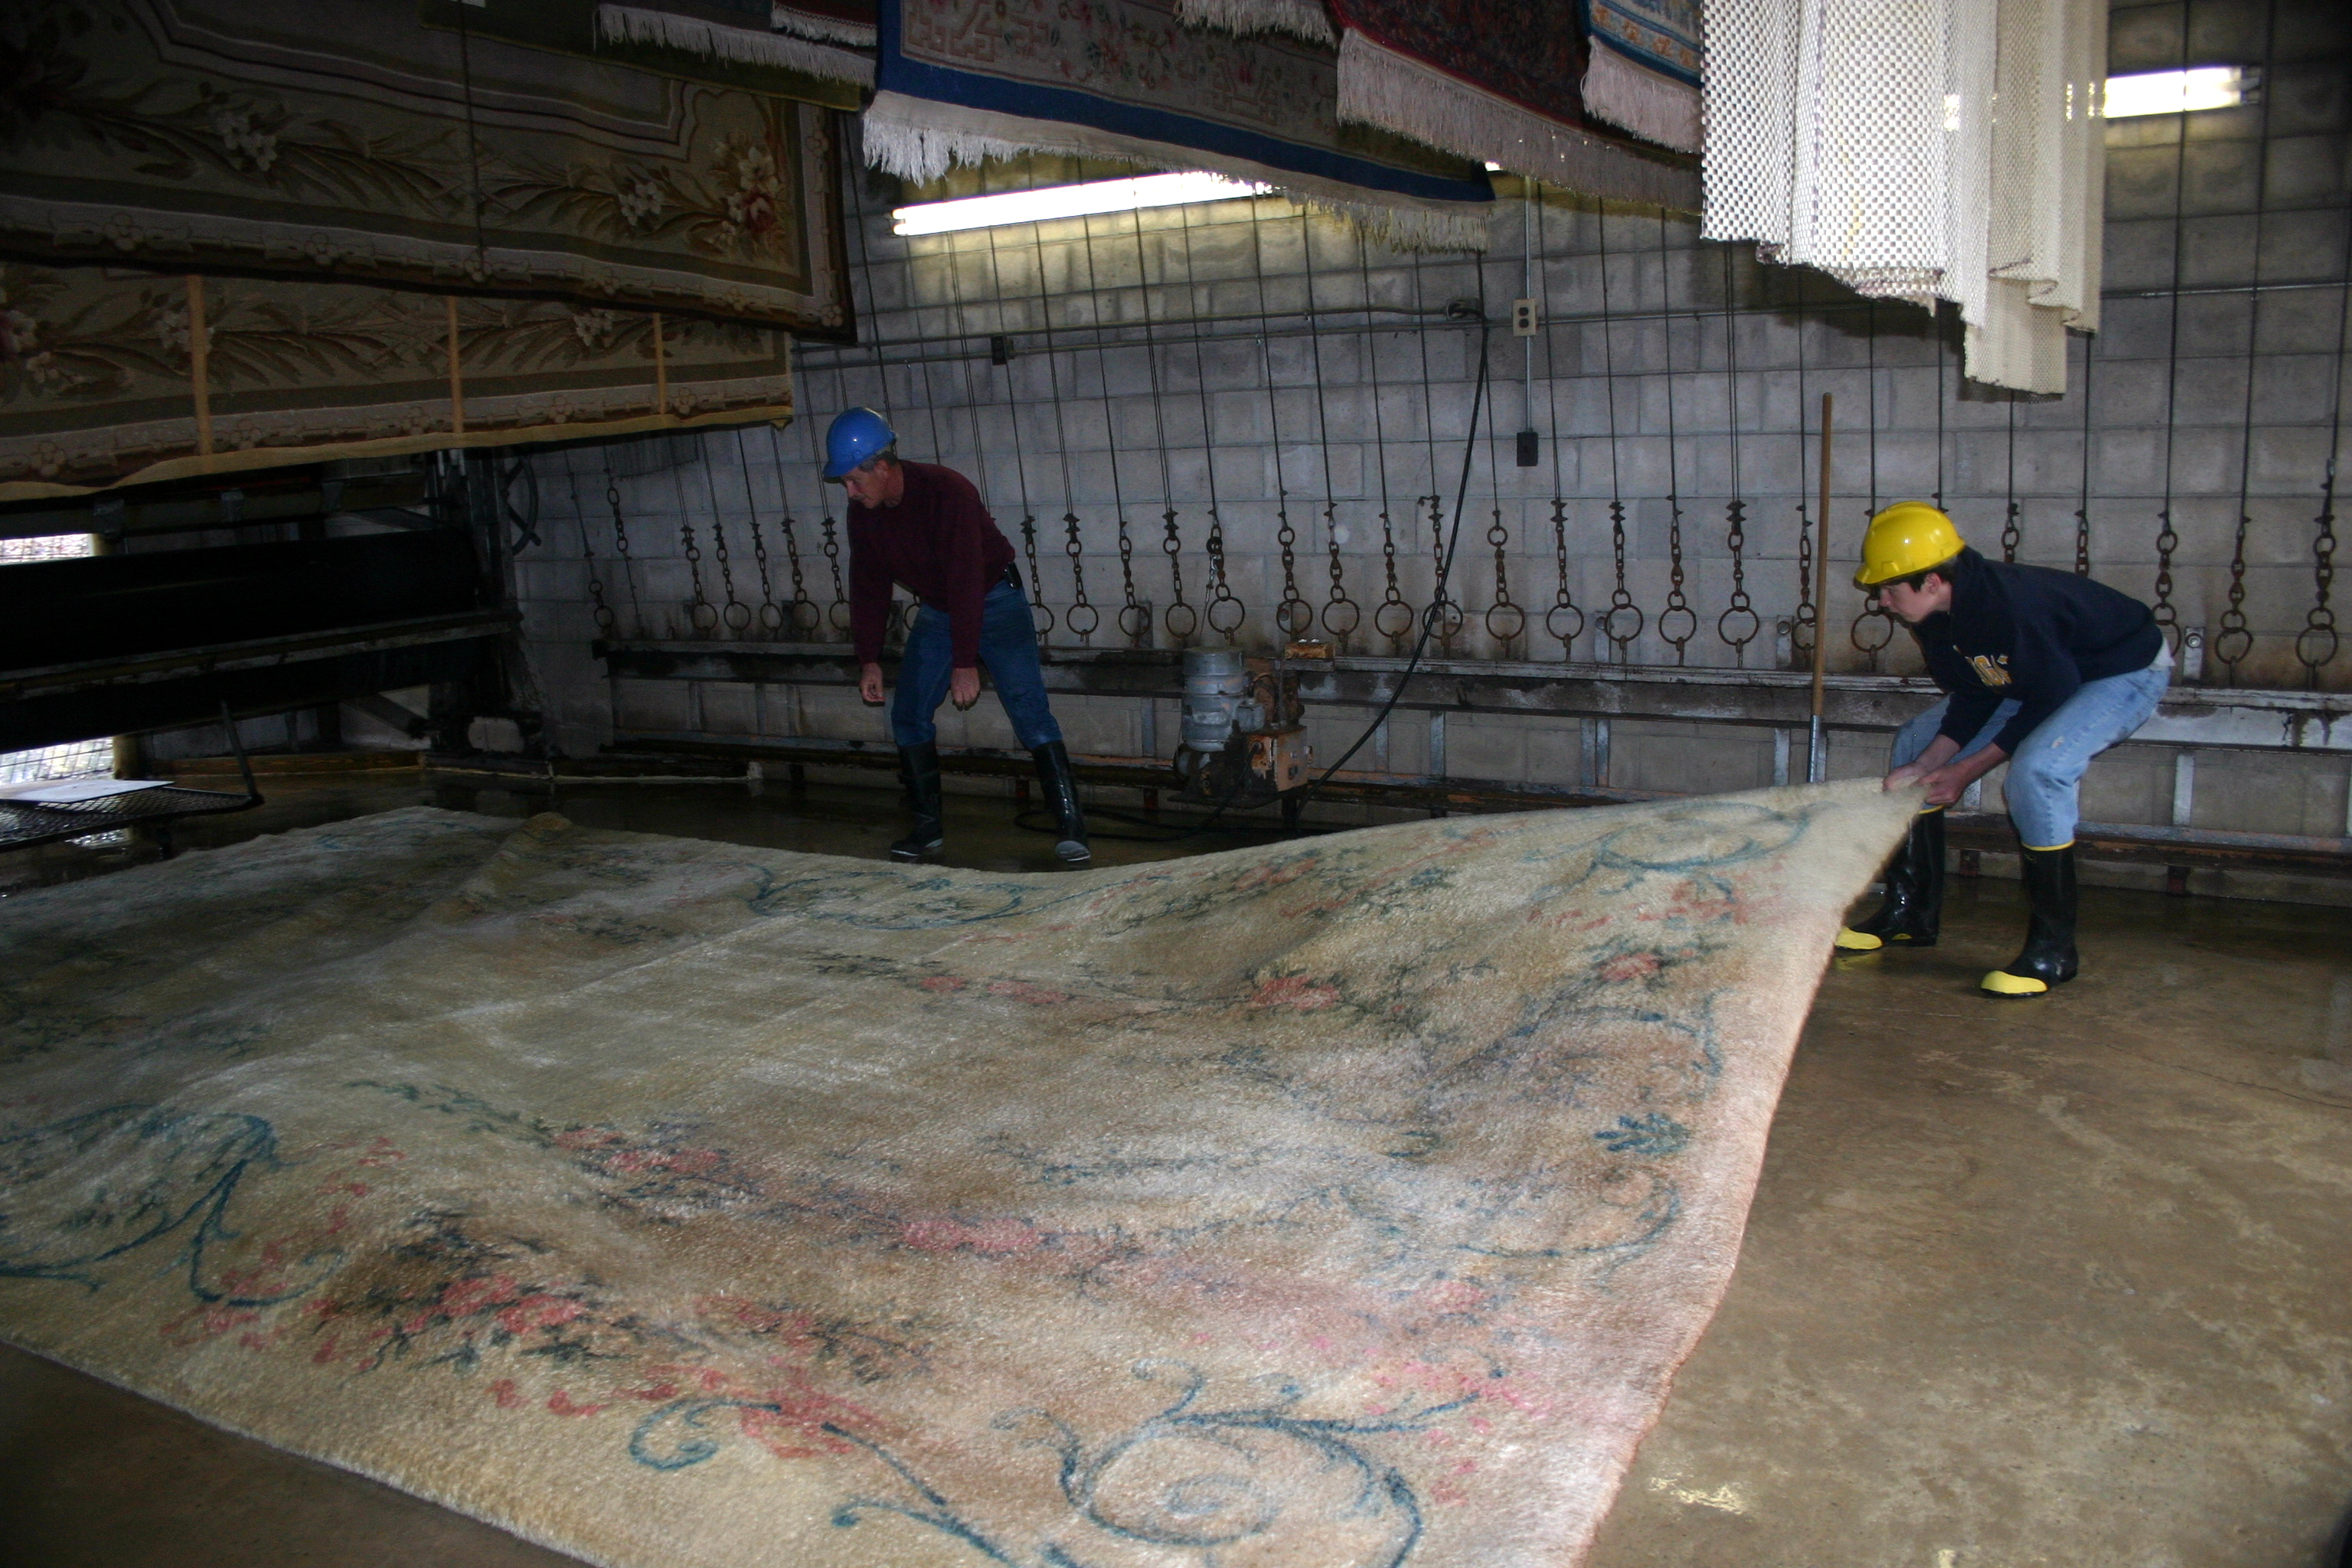 preparing the rug to be cleaned